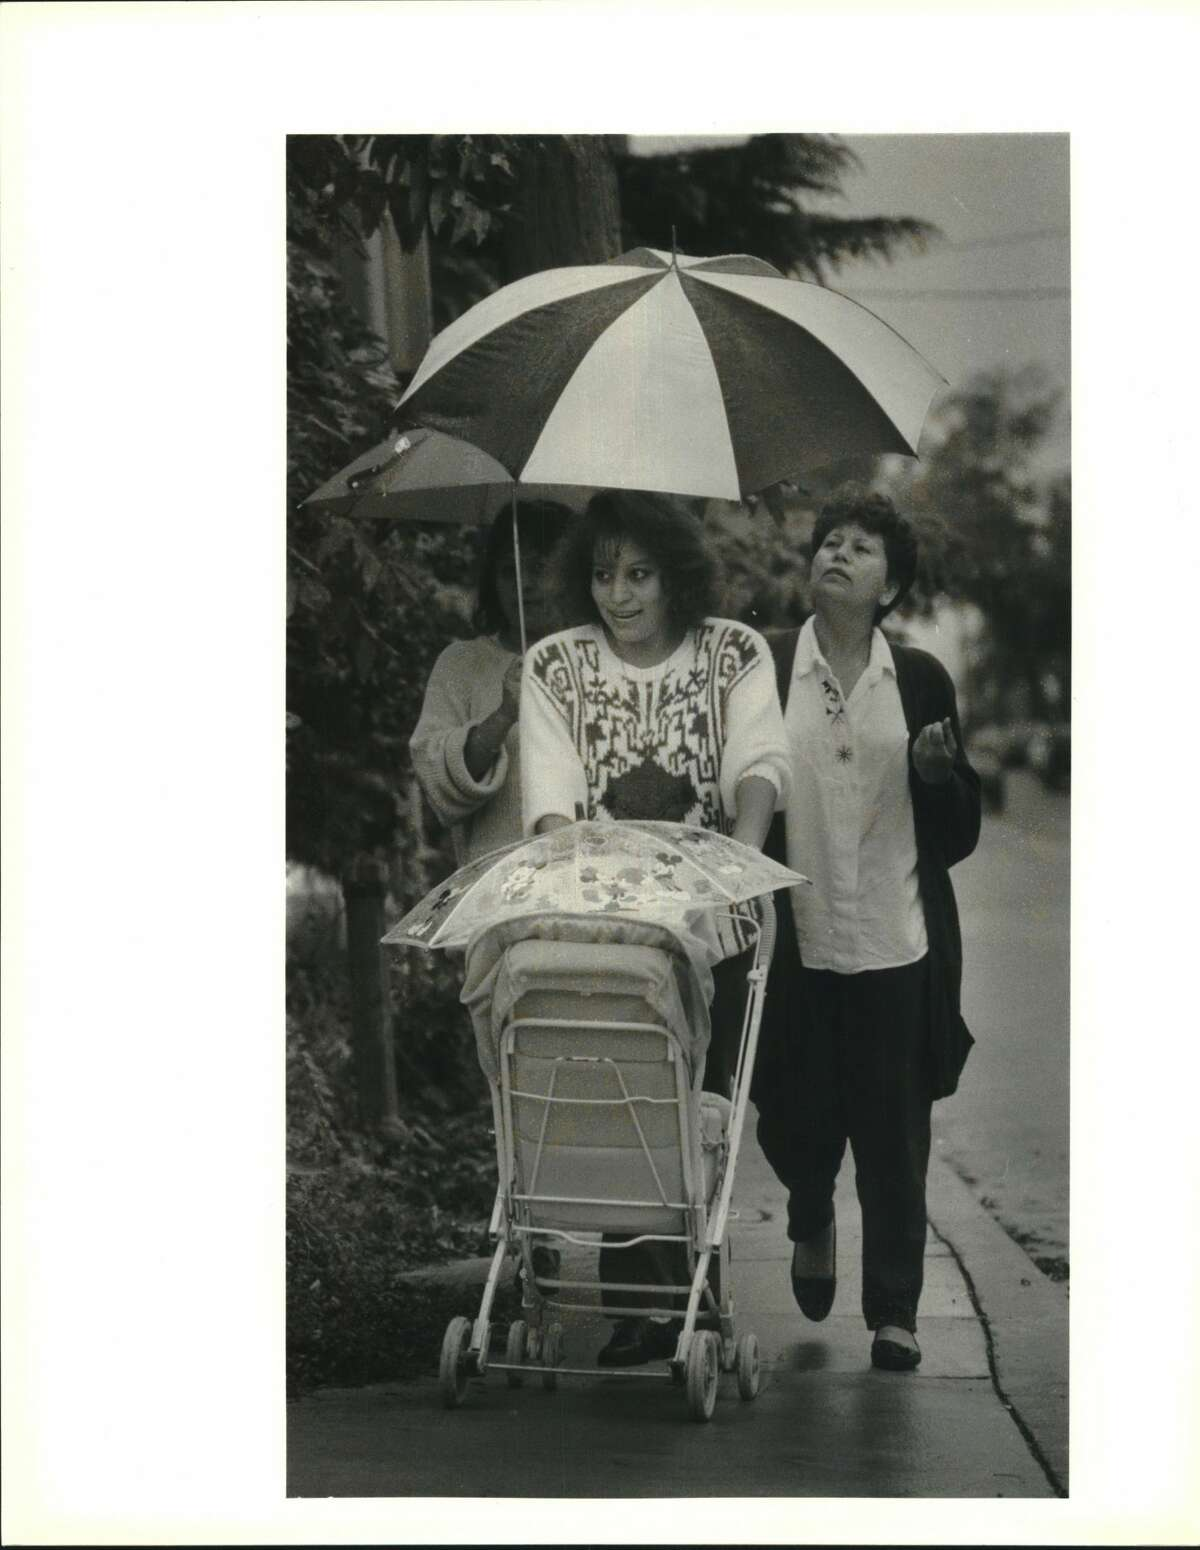 Caught on the corner of West Ashby and Main in 1993. Norma Aldape pushes her 11-month-old daughter Janessa Aldape in a stroller while Antonia Aldape tries to keep both of them dry during the rain.